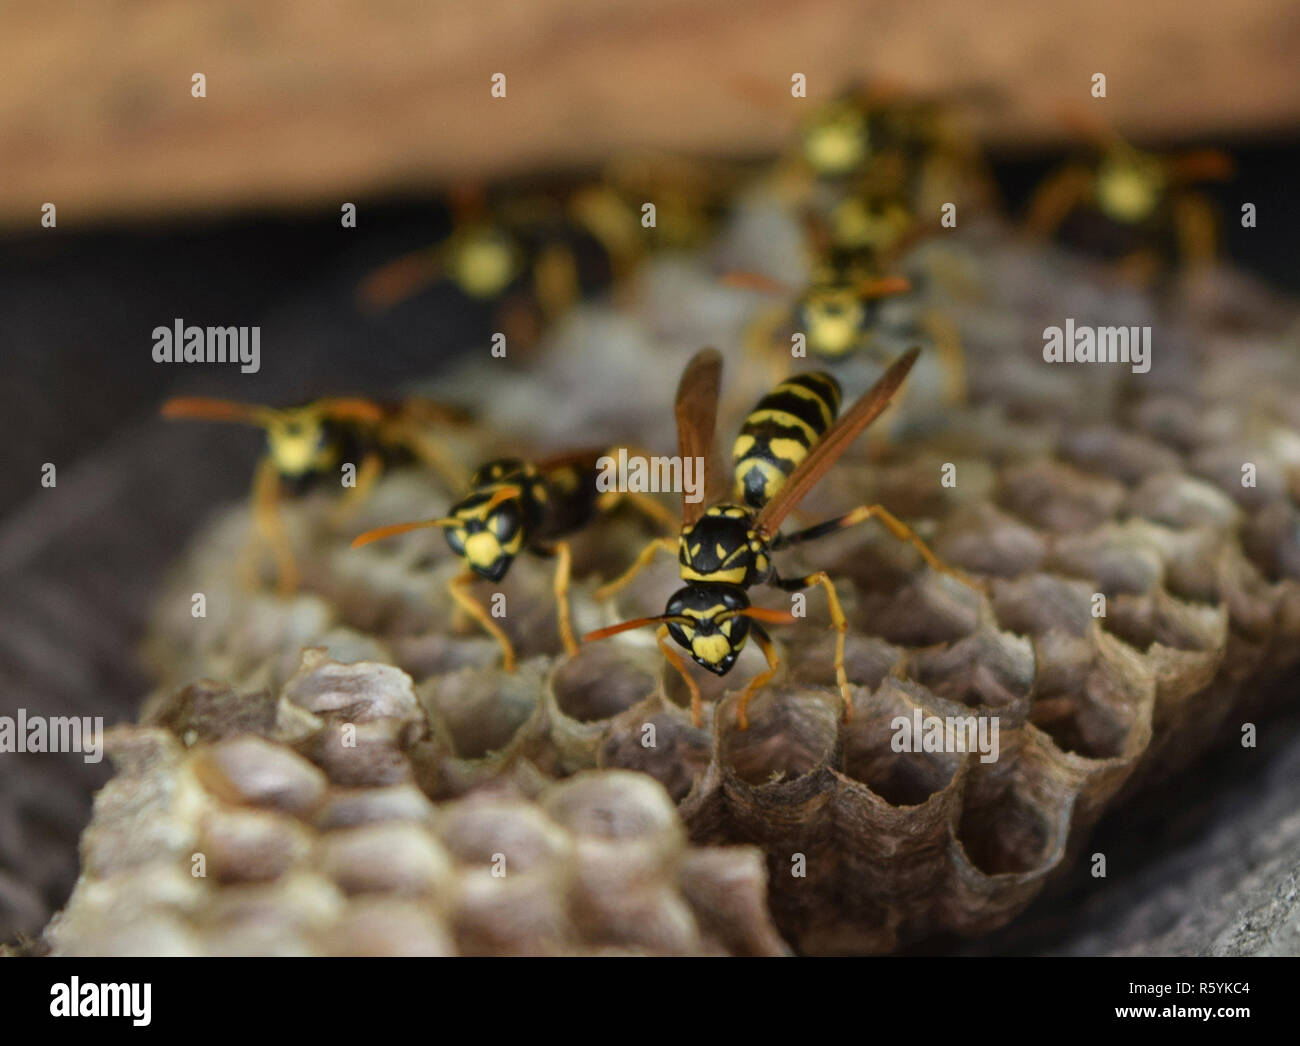 Wasp nest with wasps sitting on it. - Stock Image